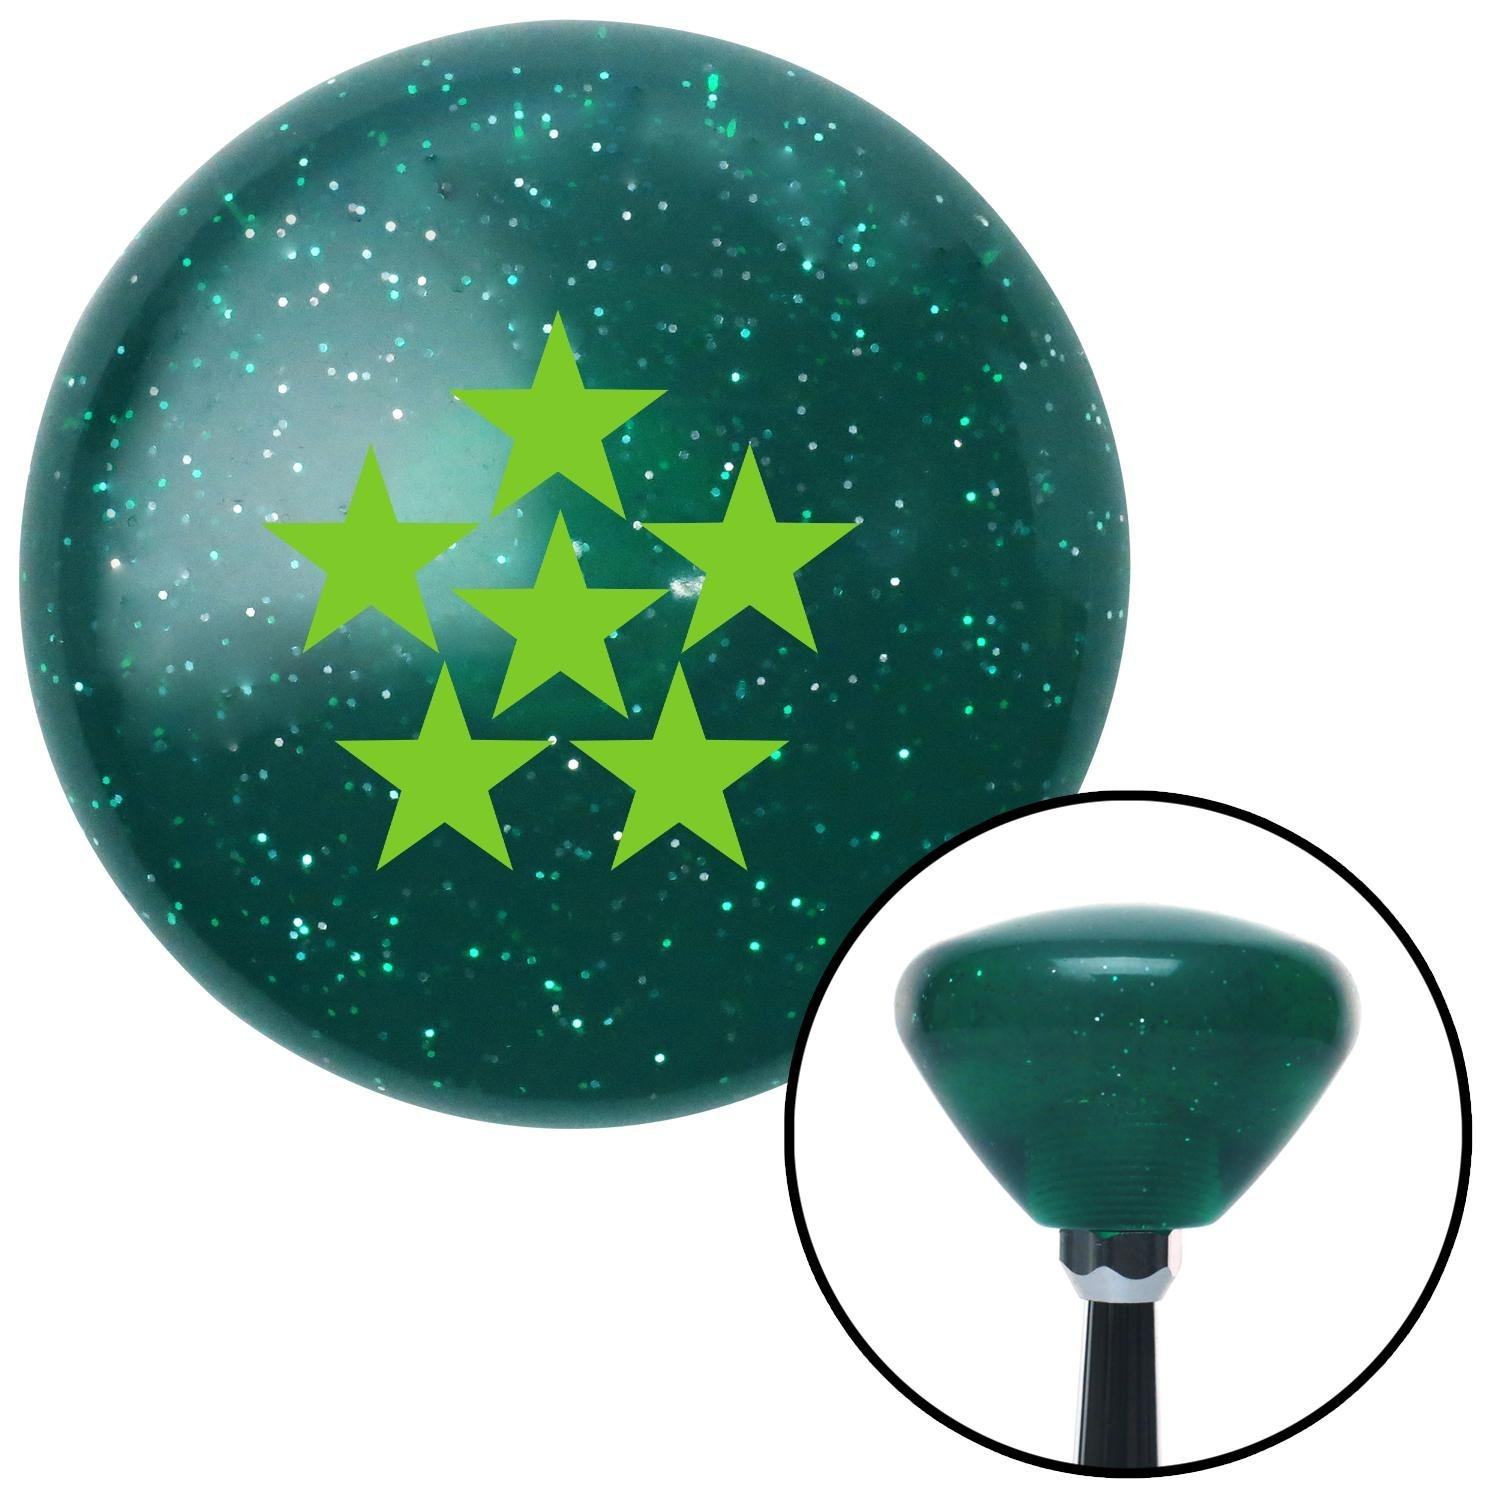 Green 6 Star Formation American Shifter 207656 Green Retro Metal Flake Shift Knob with M16 x 1.5 Insert